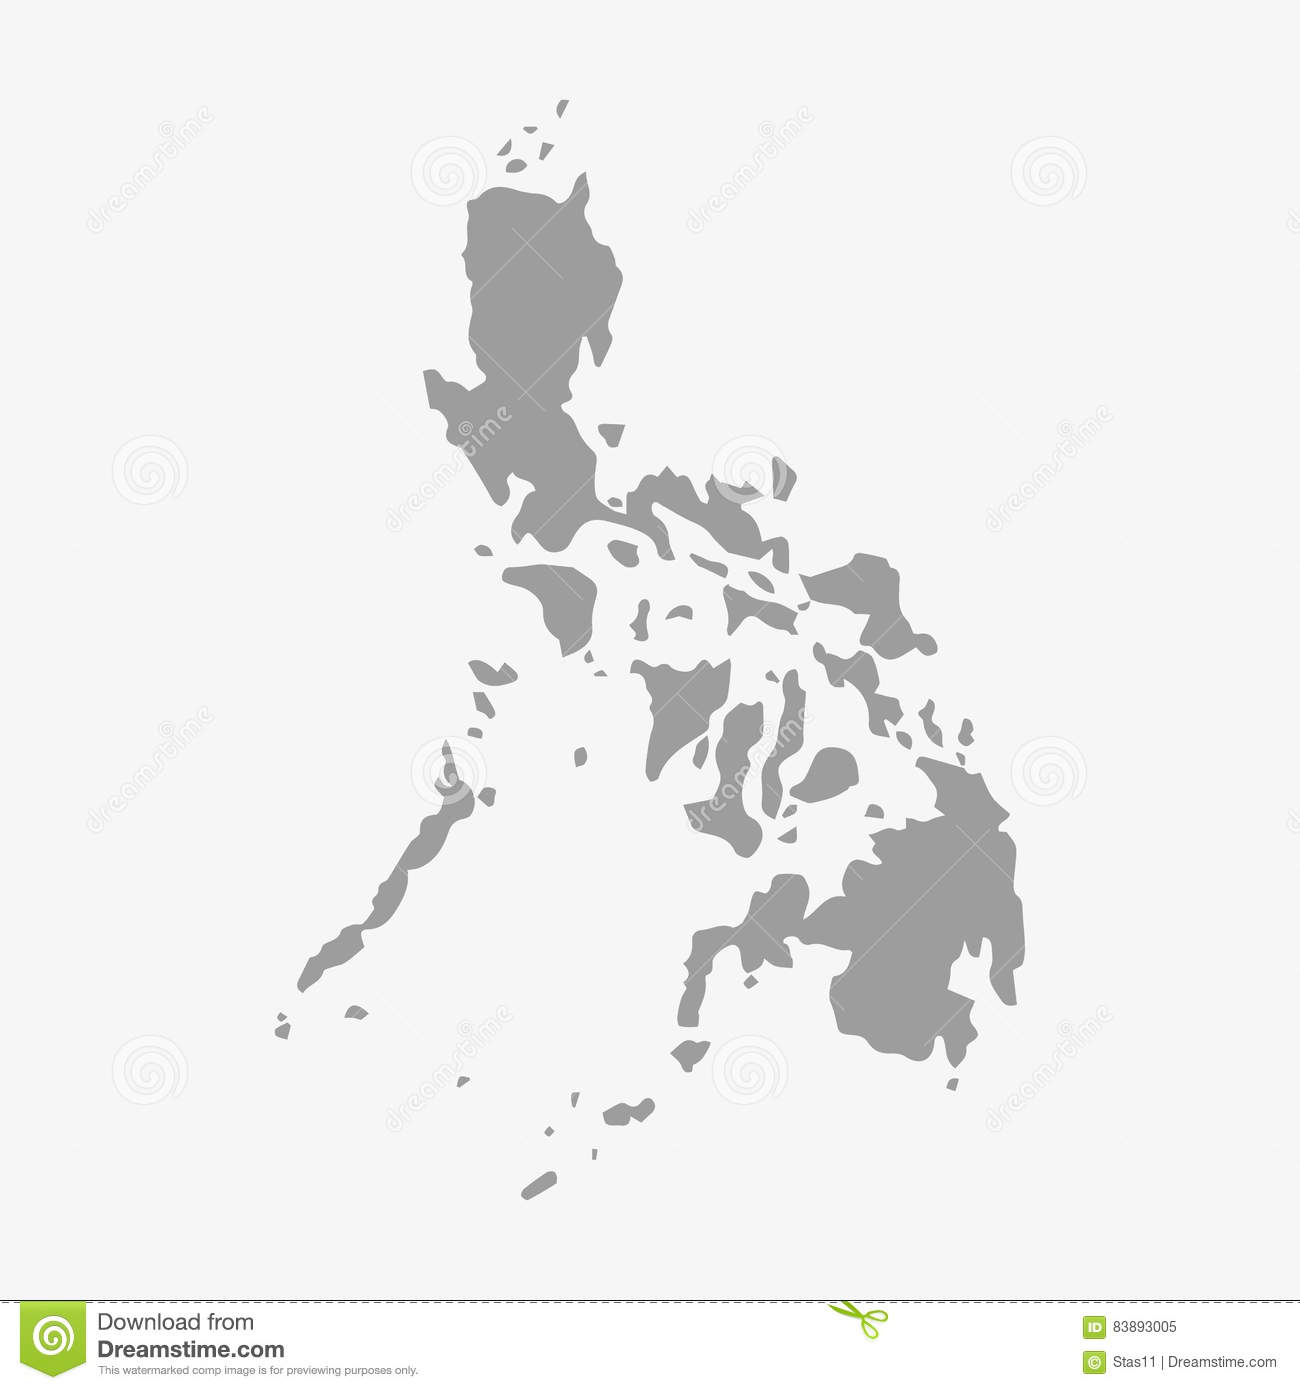 Philippines Map In Gray On A White Background Stock Vector ... on